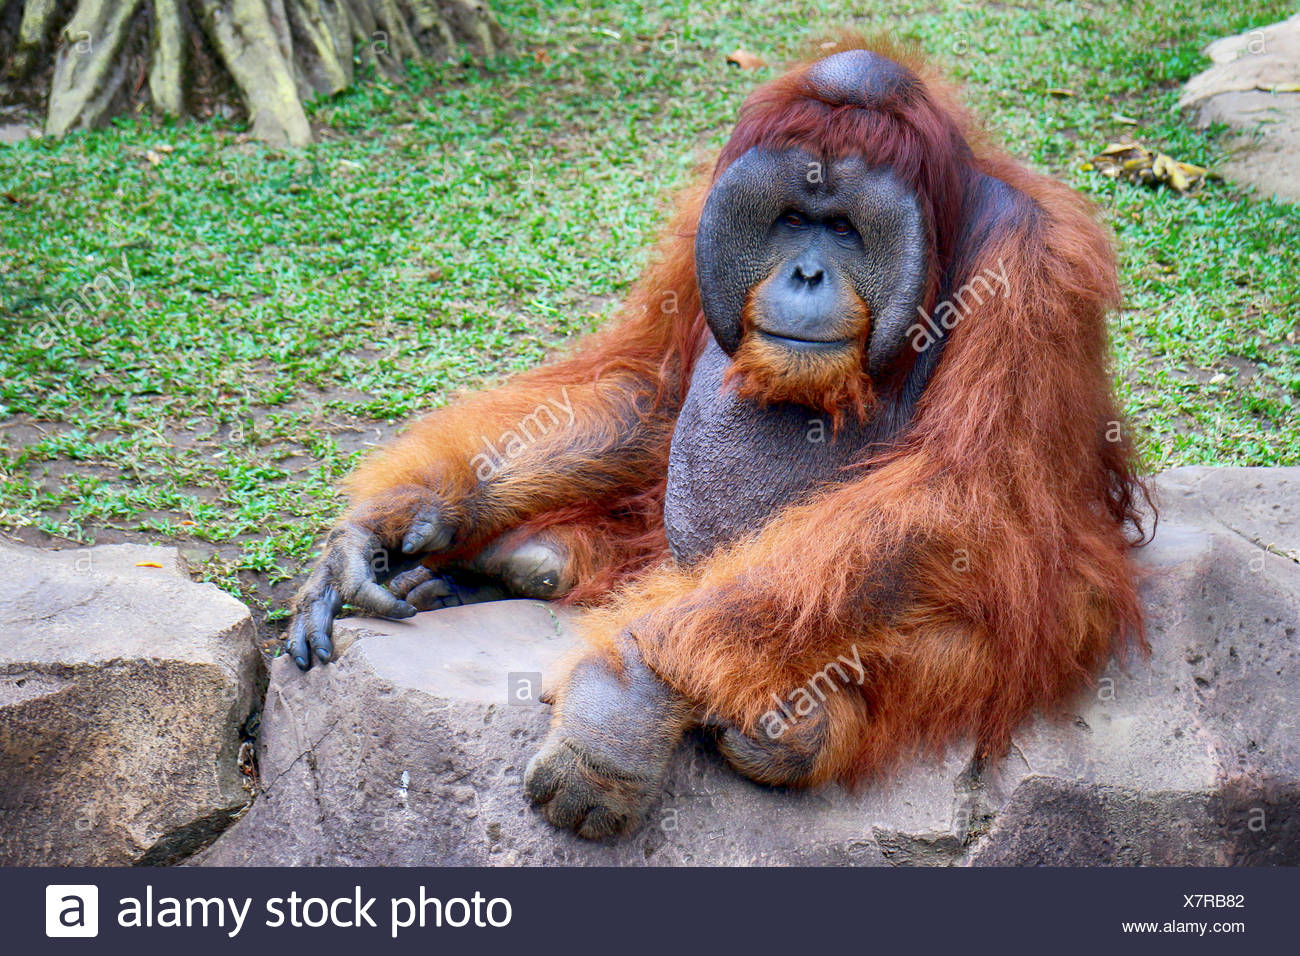 Orangutan Sitting On Retaining Wall On Field - Stock Image